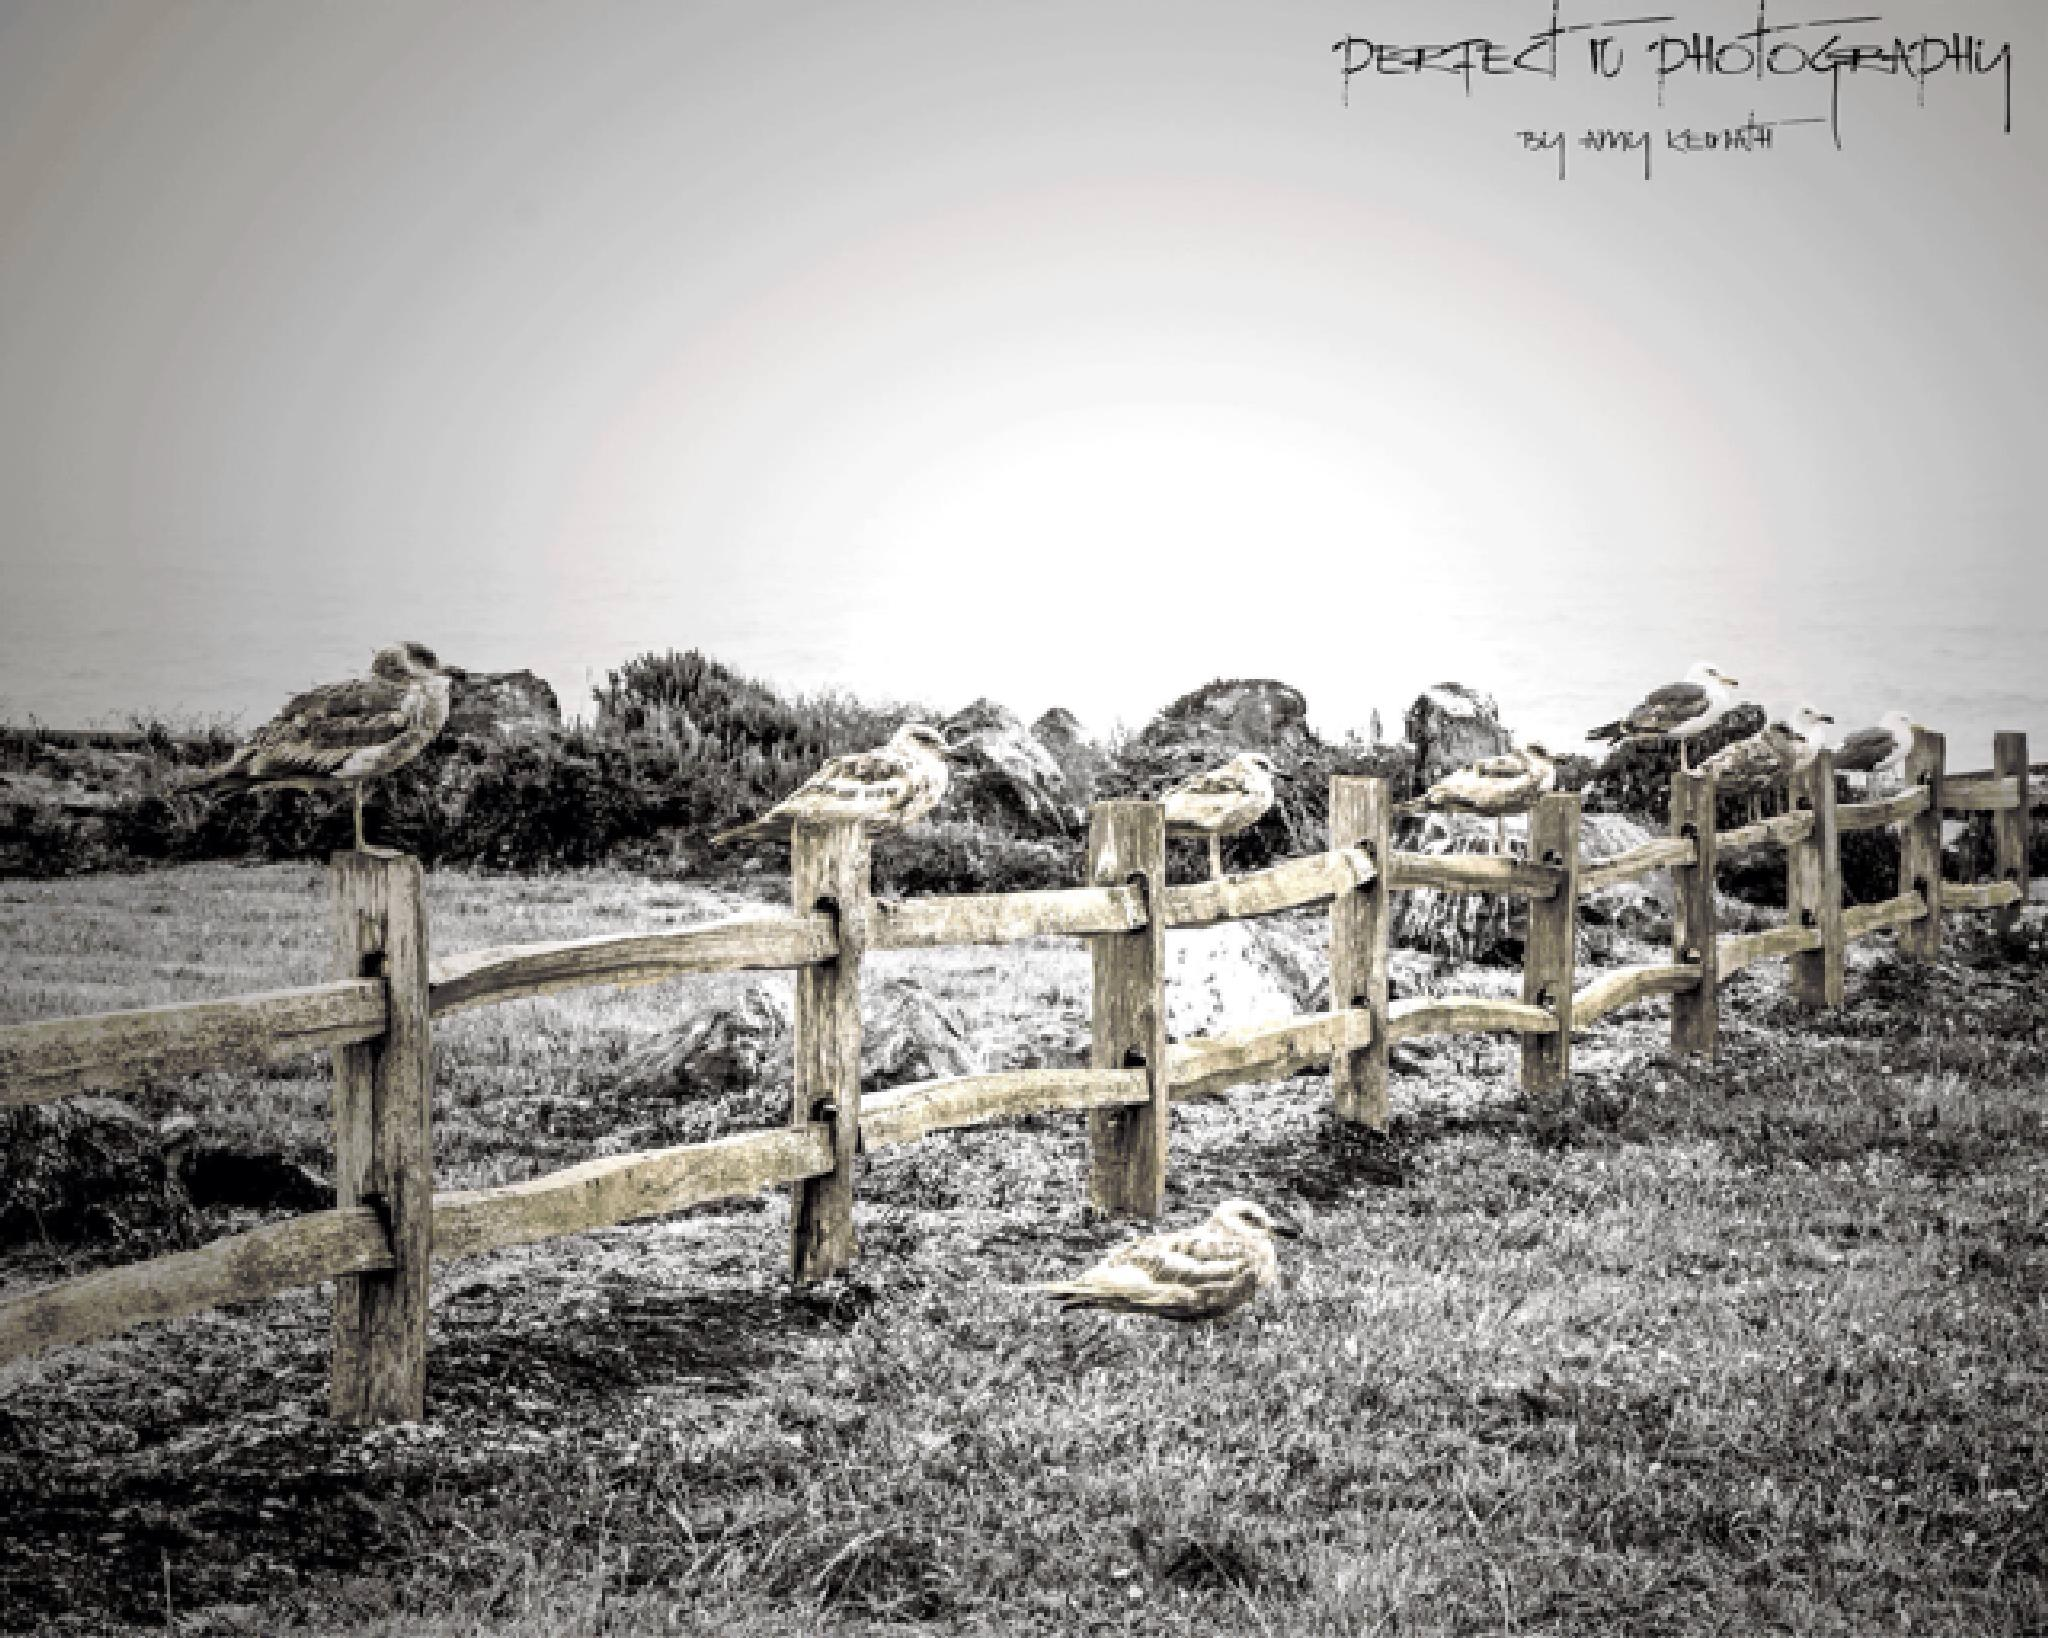 IMG_7360 by Amy Keinath